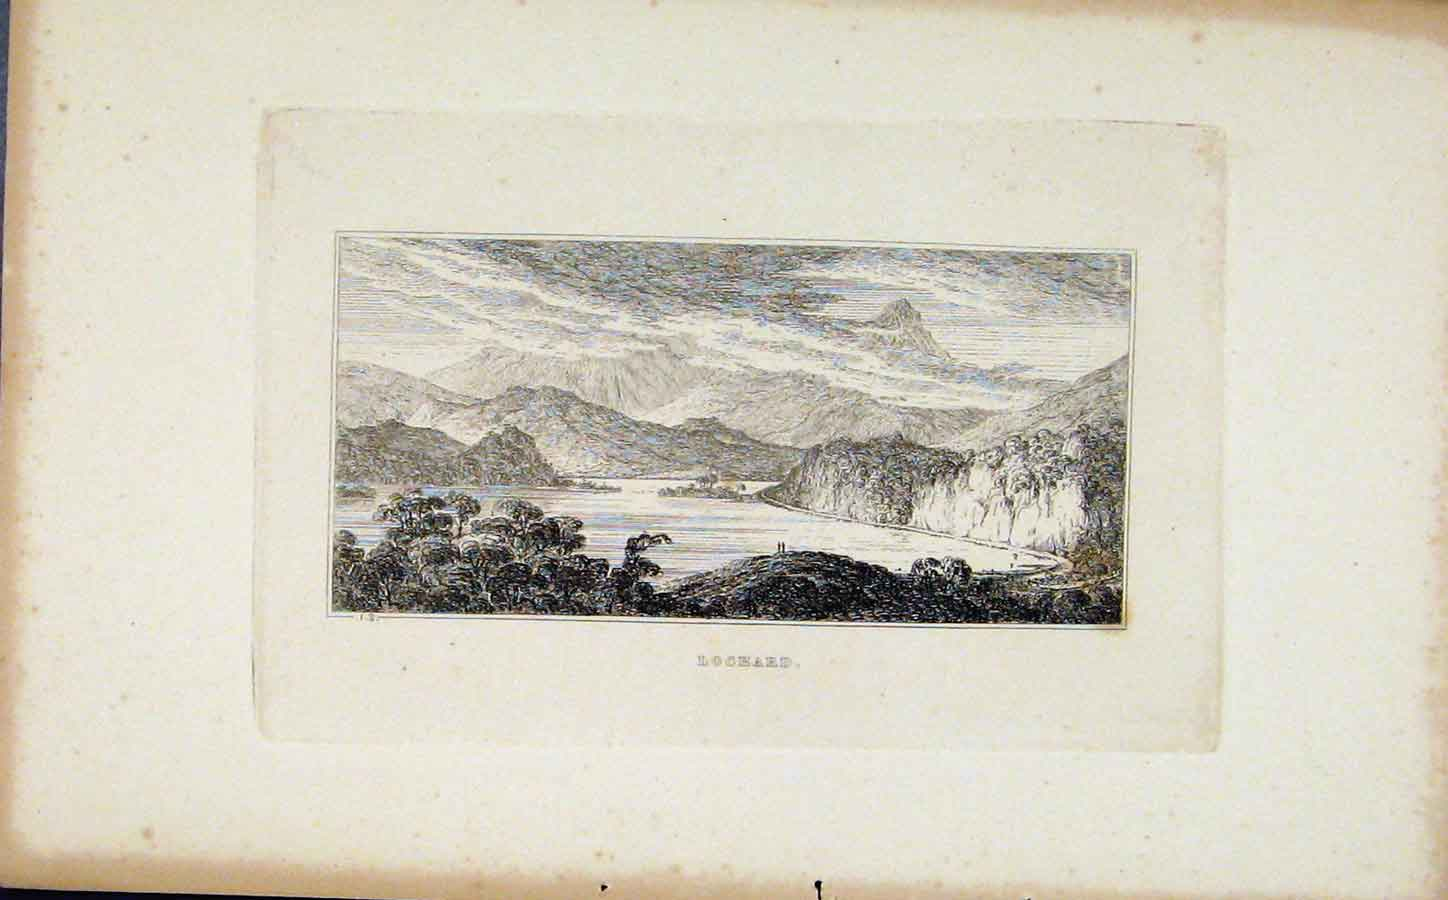 Print Lochard Etching Fine Art C1830 Sketch 028191 Old Original